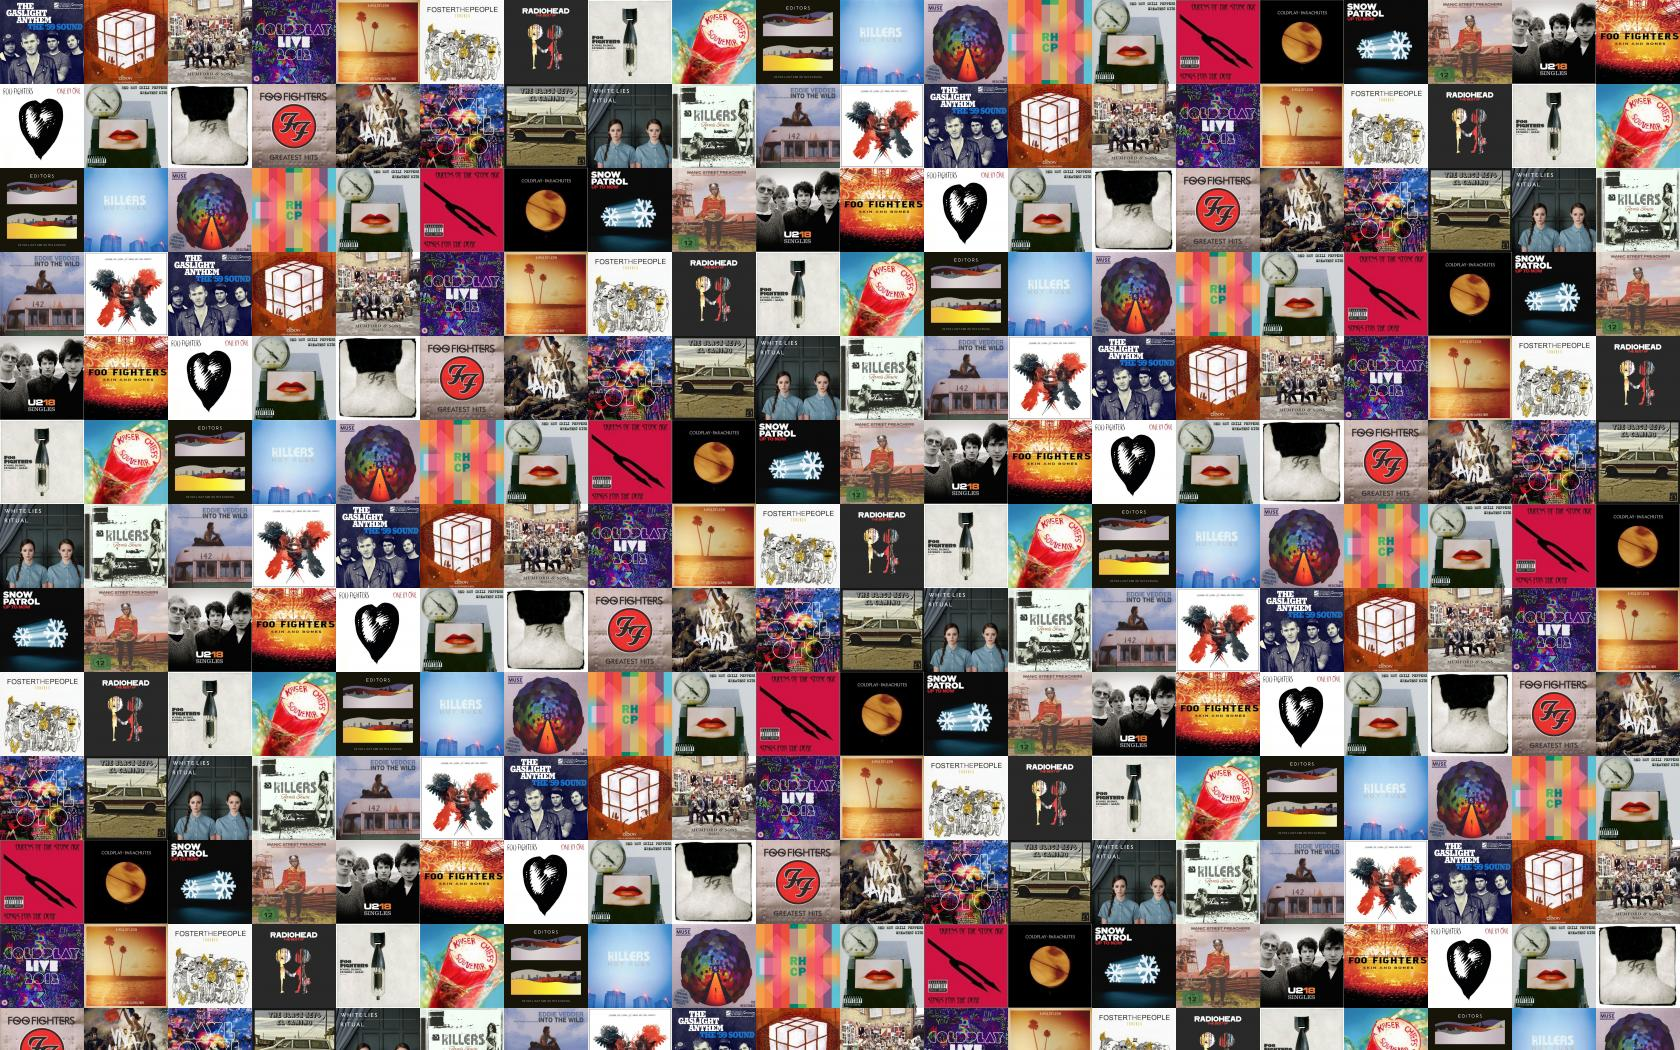 Download This Free Wallpaper With Images Of Gaslight Anthem 59 Sound Elbow The Seldom Kid MumFord Sons Babel Coldplay Live 2012 Kings Leon